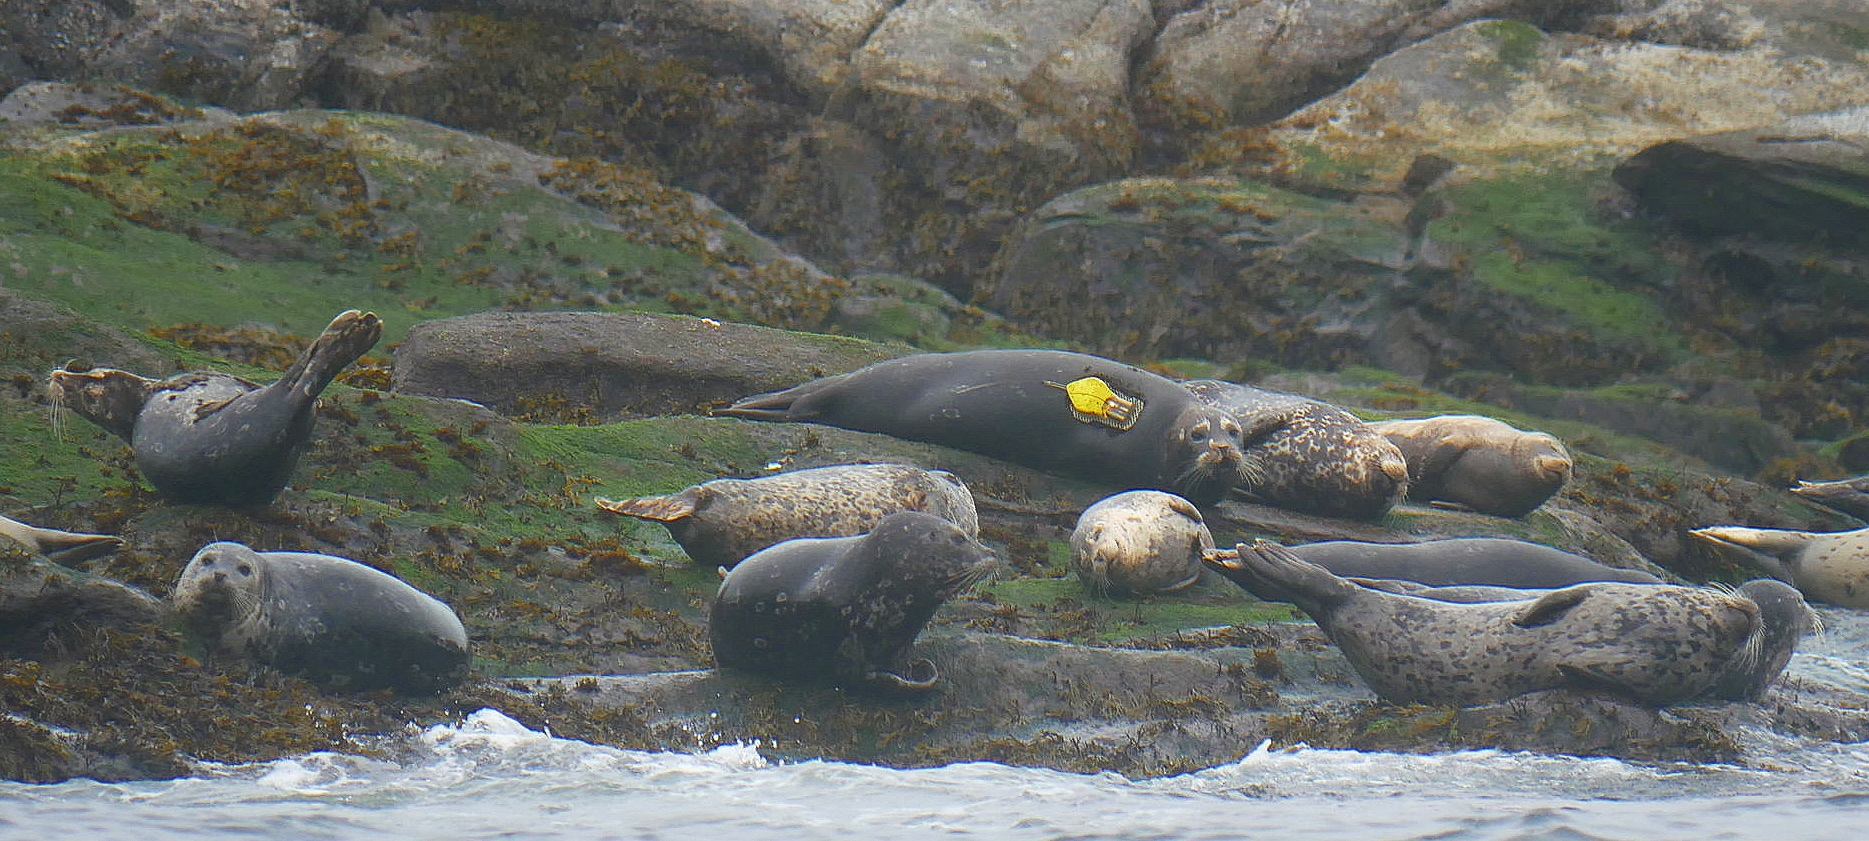 Tagged Seal hanging out on Snake Island! Photo by Cheyenne Brewster. (10:30)